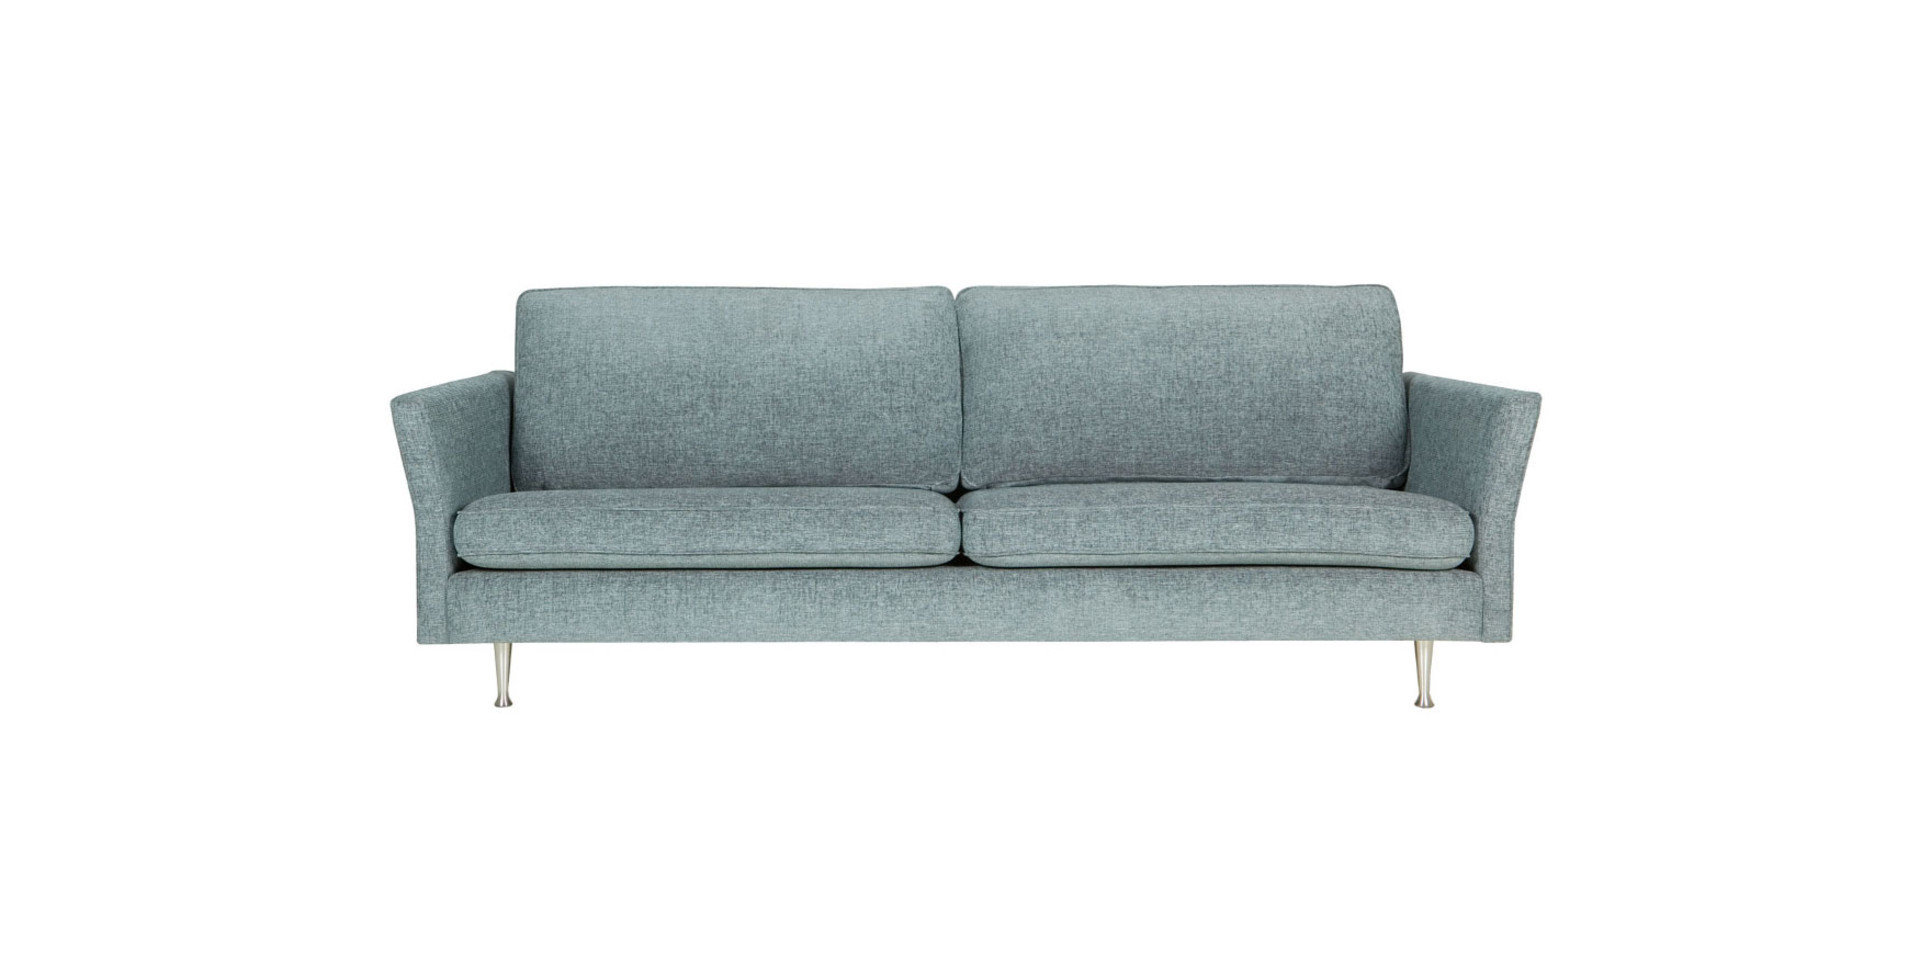 sits-freddy-canape-3seater_divine40_light_blue_1_0